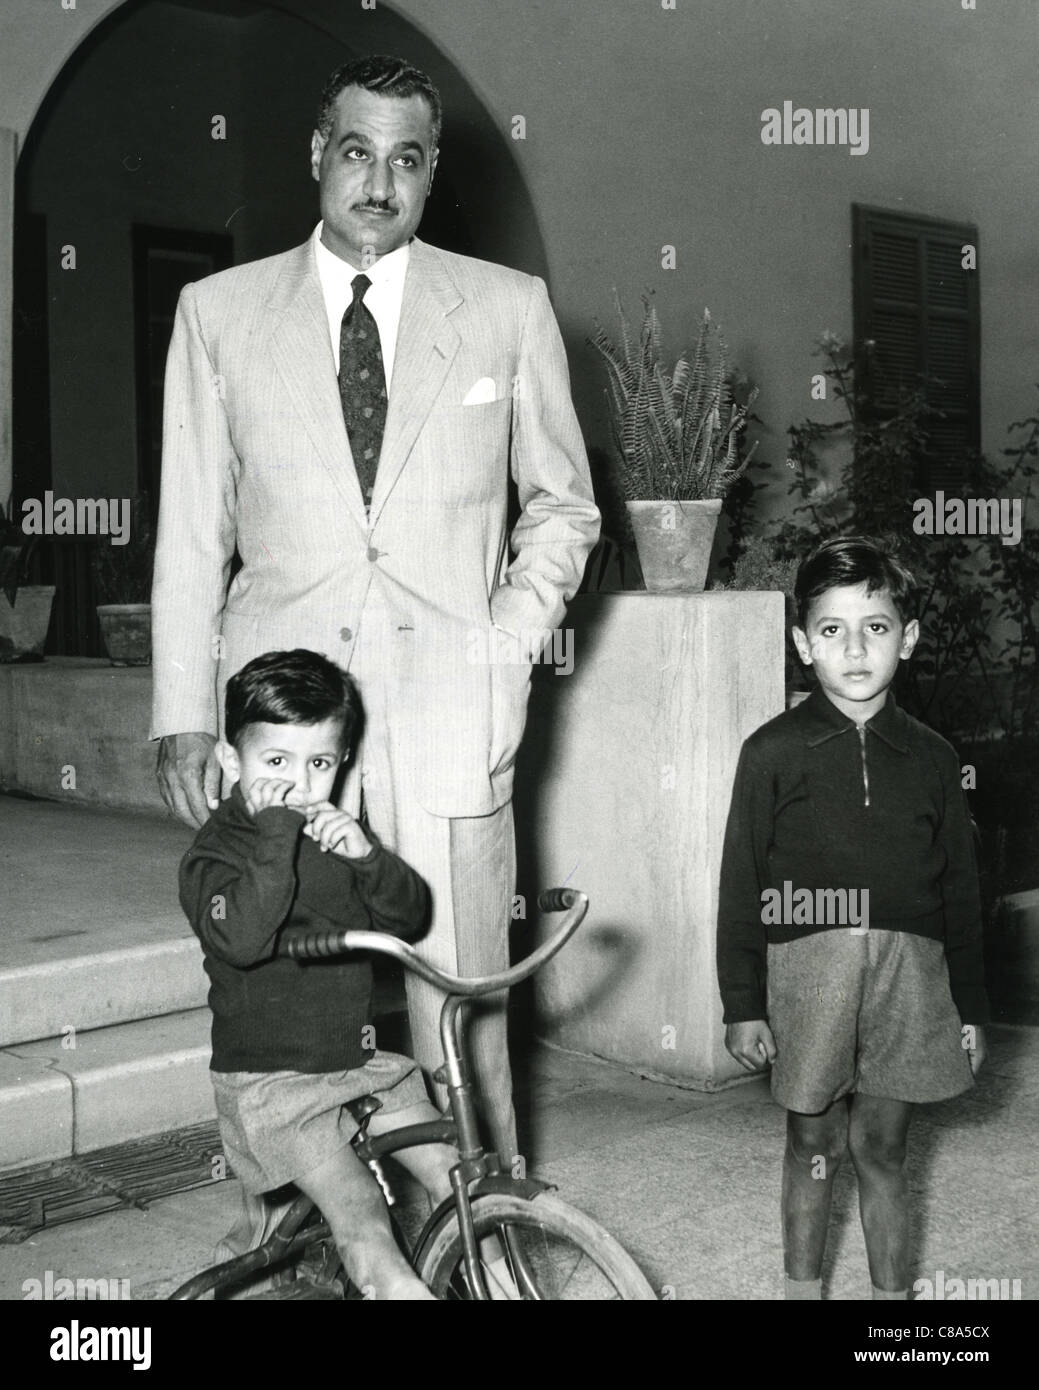 GAMAL ABDEL NASSER (1918-1970) second President of Egypt with two of his three sons - Stock Image